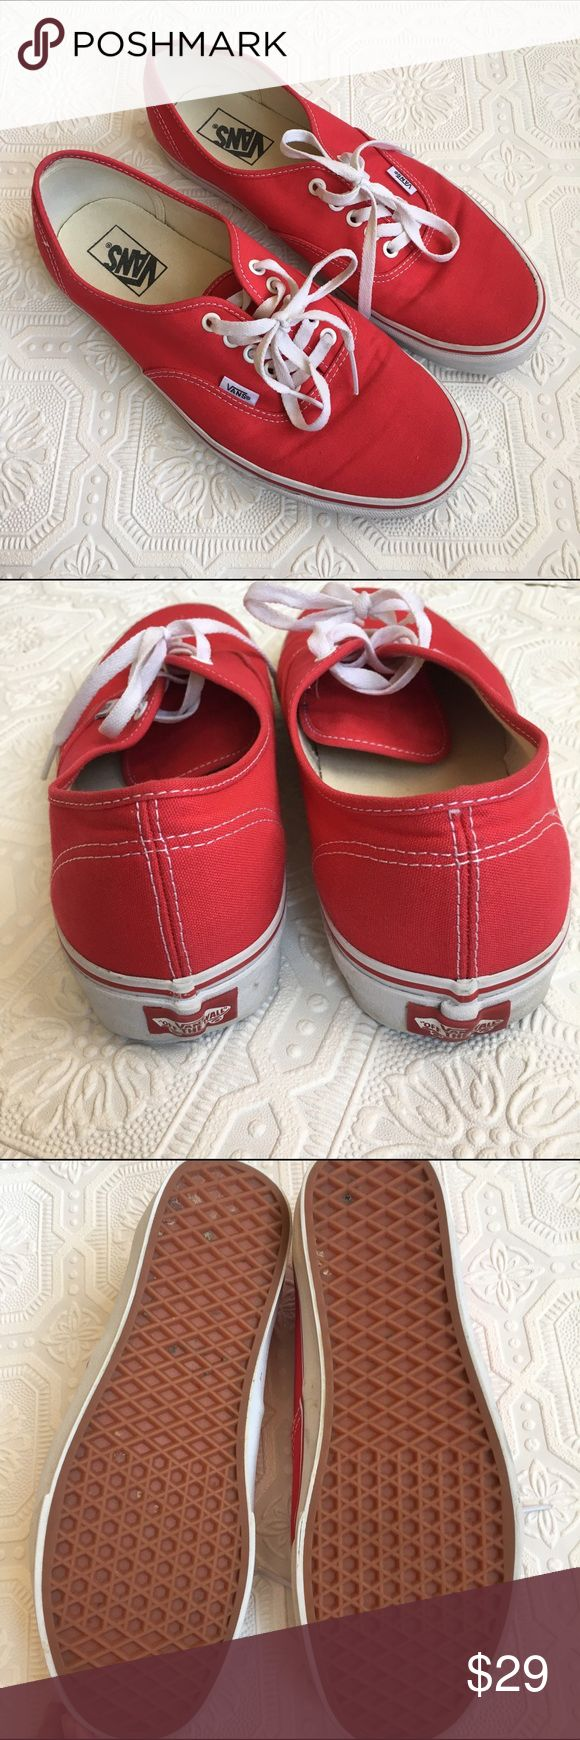 Men's Red Vans Shoes Gently used. Red canvas Vans sneakers with Vans' signature rubber waffle outsoles. Vans Shoes Sneakers